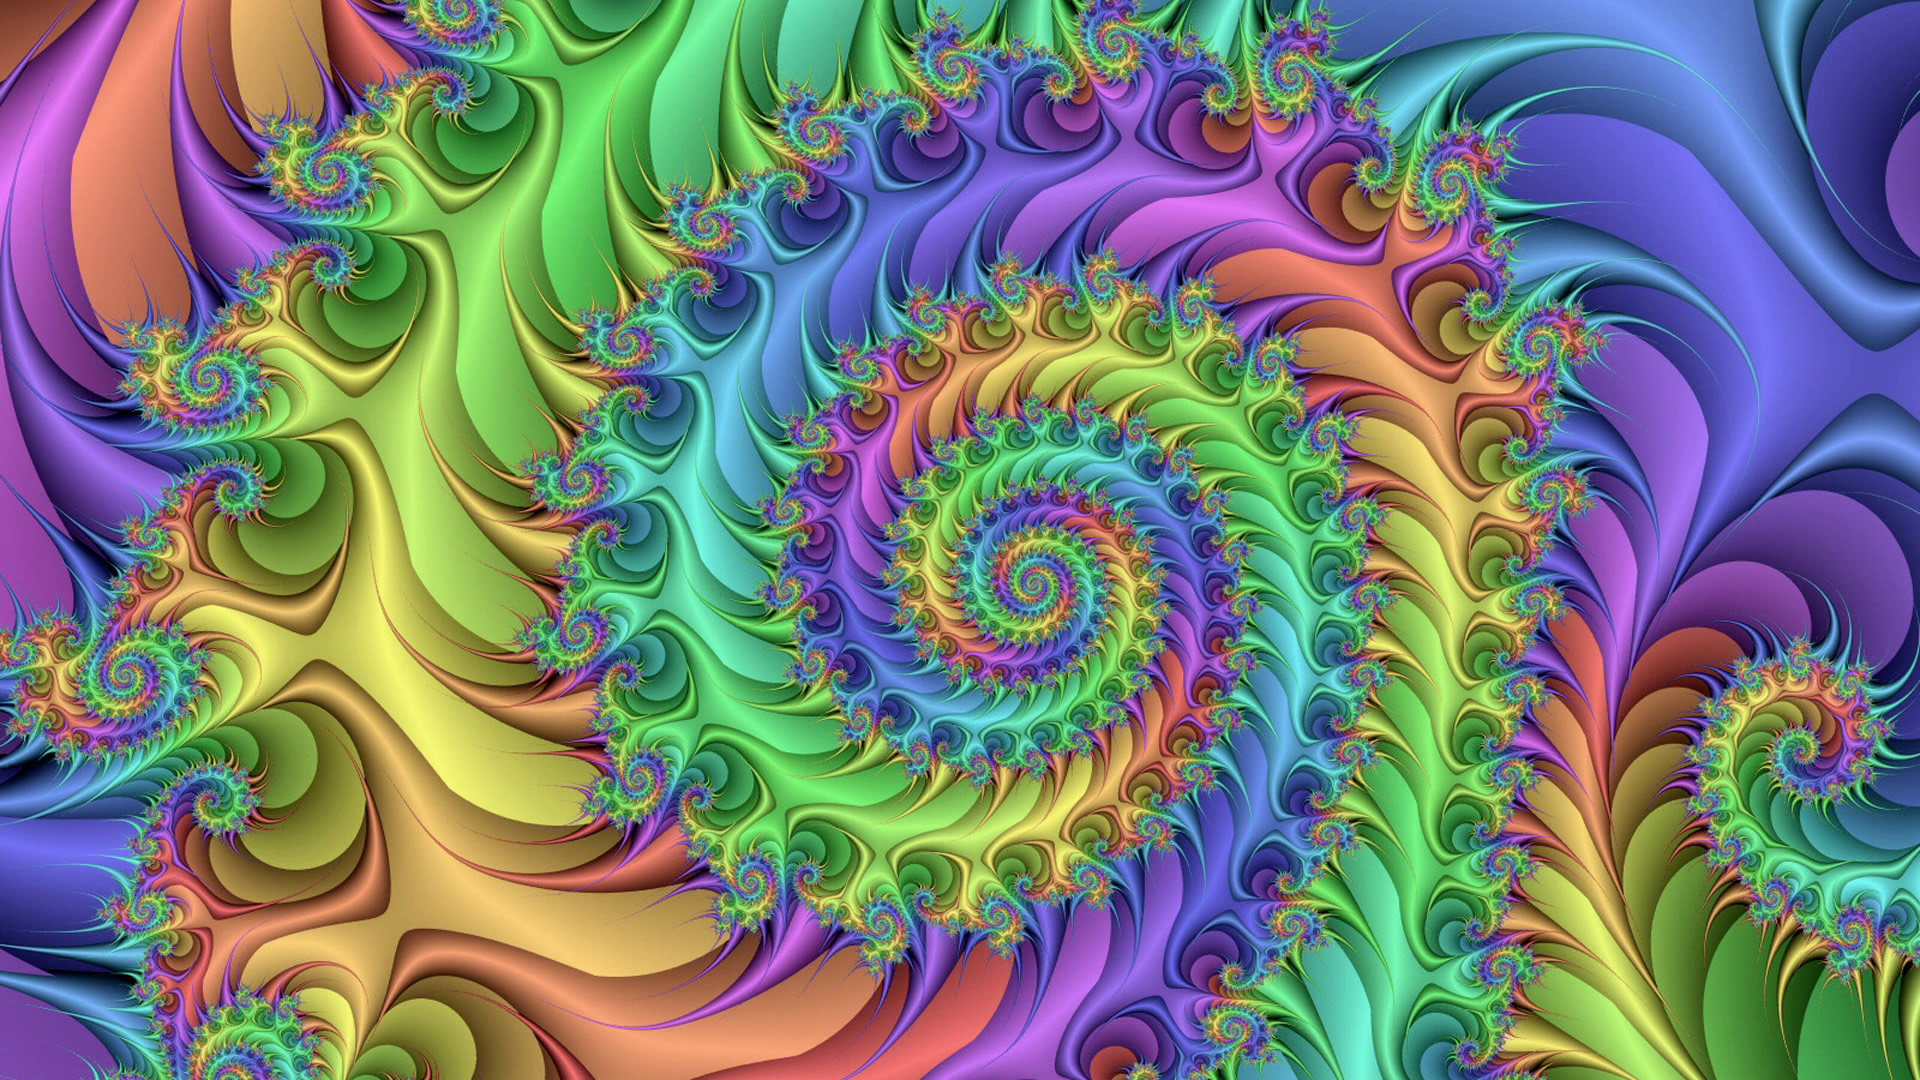 HD Wallpapers image gallery trippy wallpaper 1920x1080 1009027 1920x1080